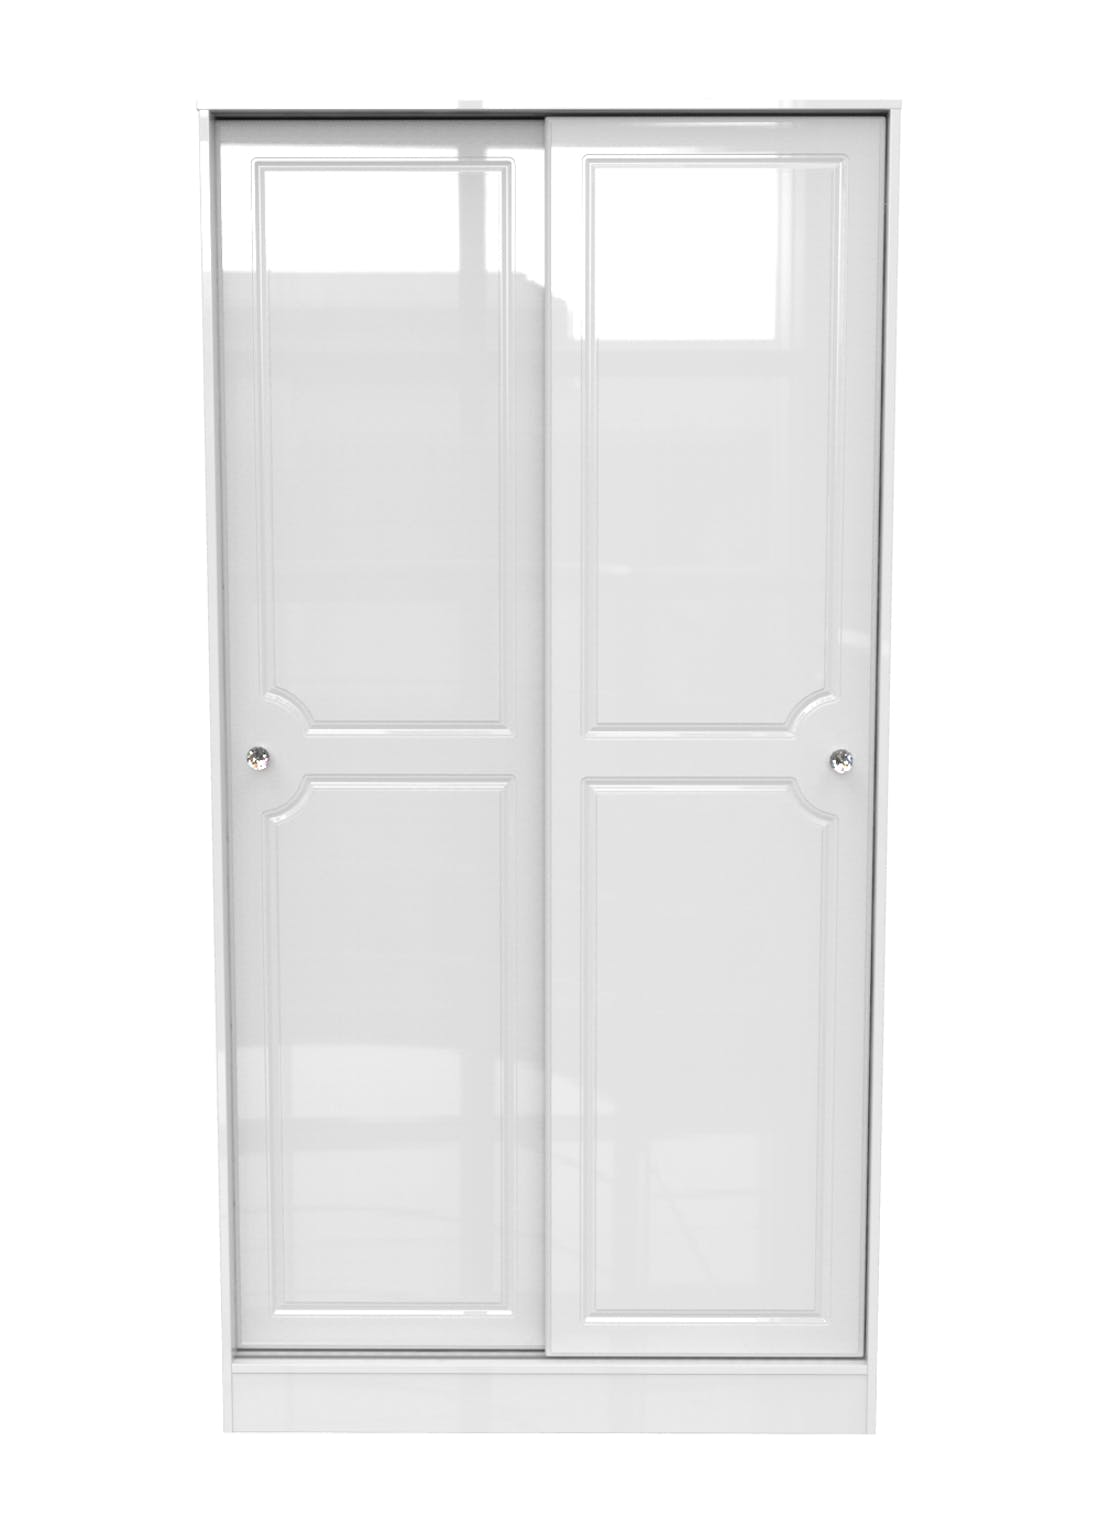 Swift Marlborough Sliding Door Wardrobe (197.5cm x 100.5cm x 60cm)